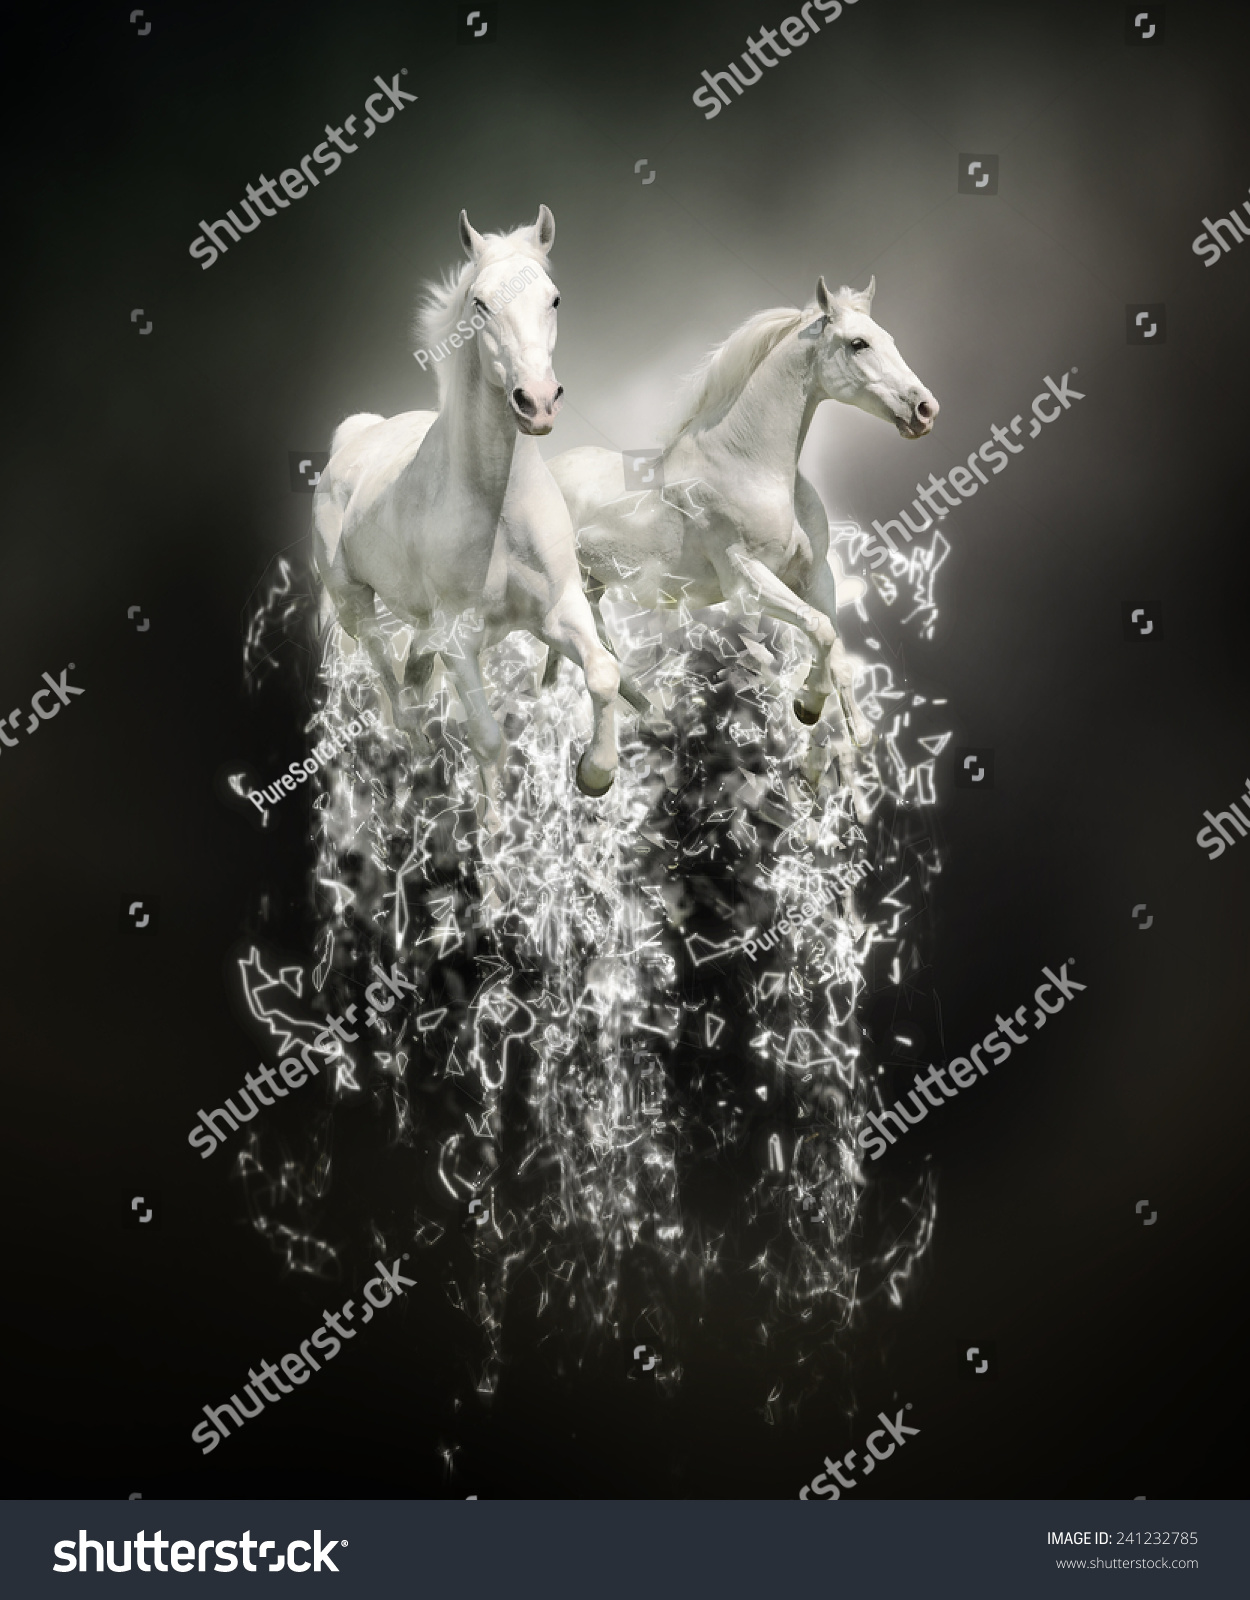 white horses abstract animal concept on stock illustration